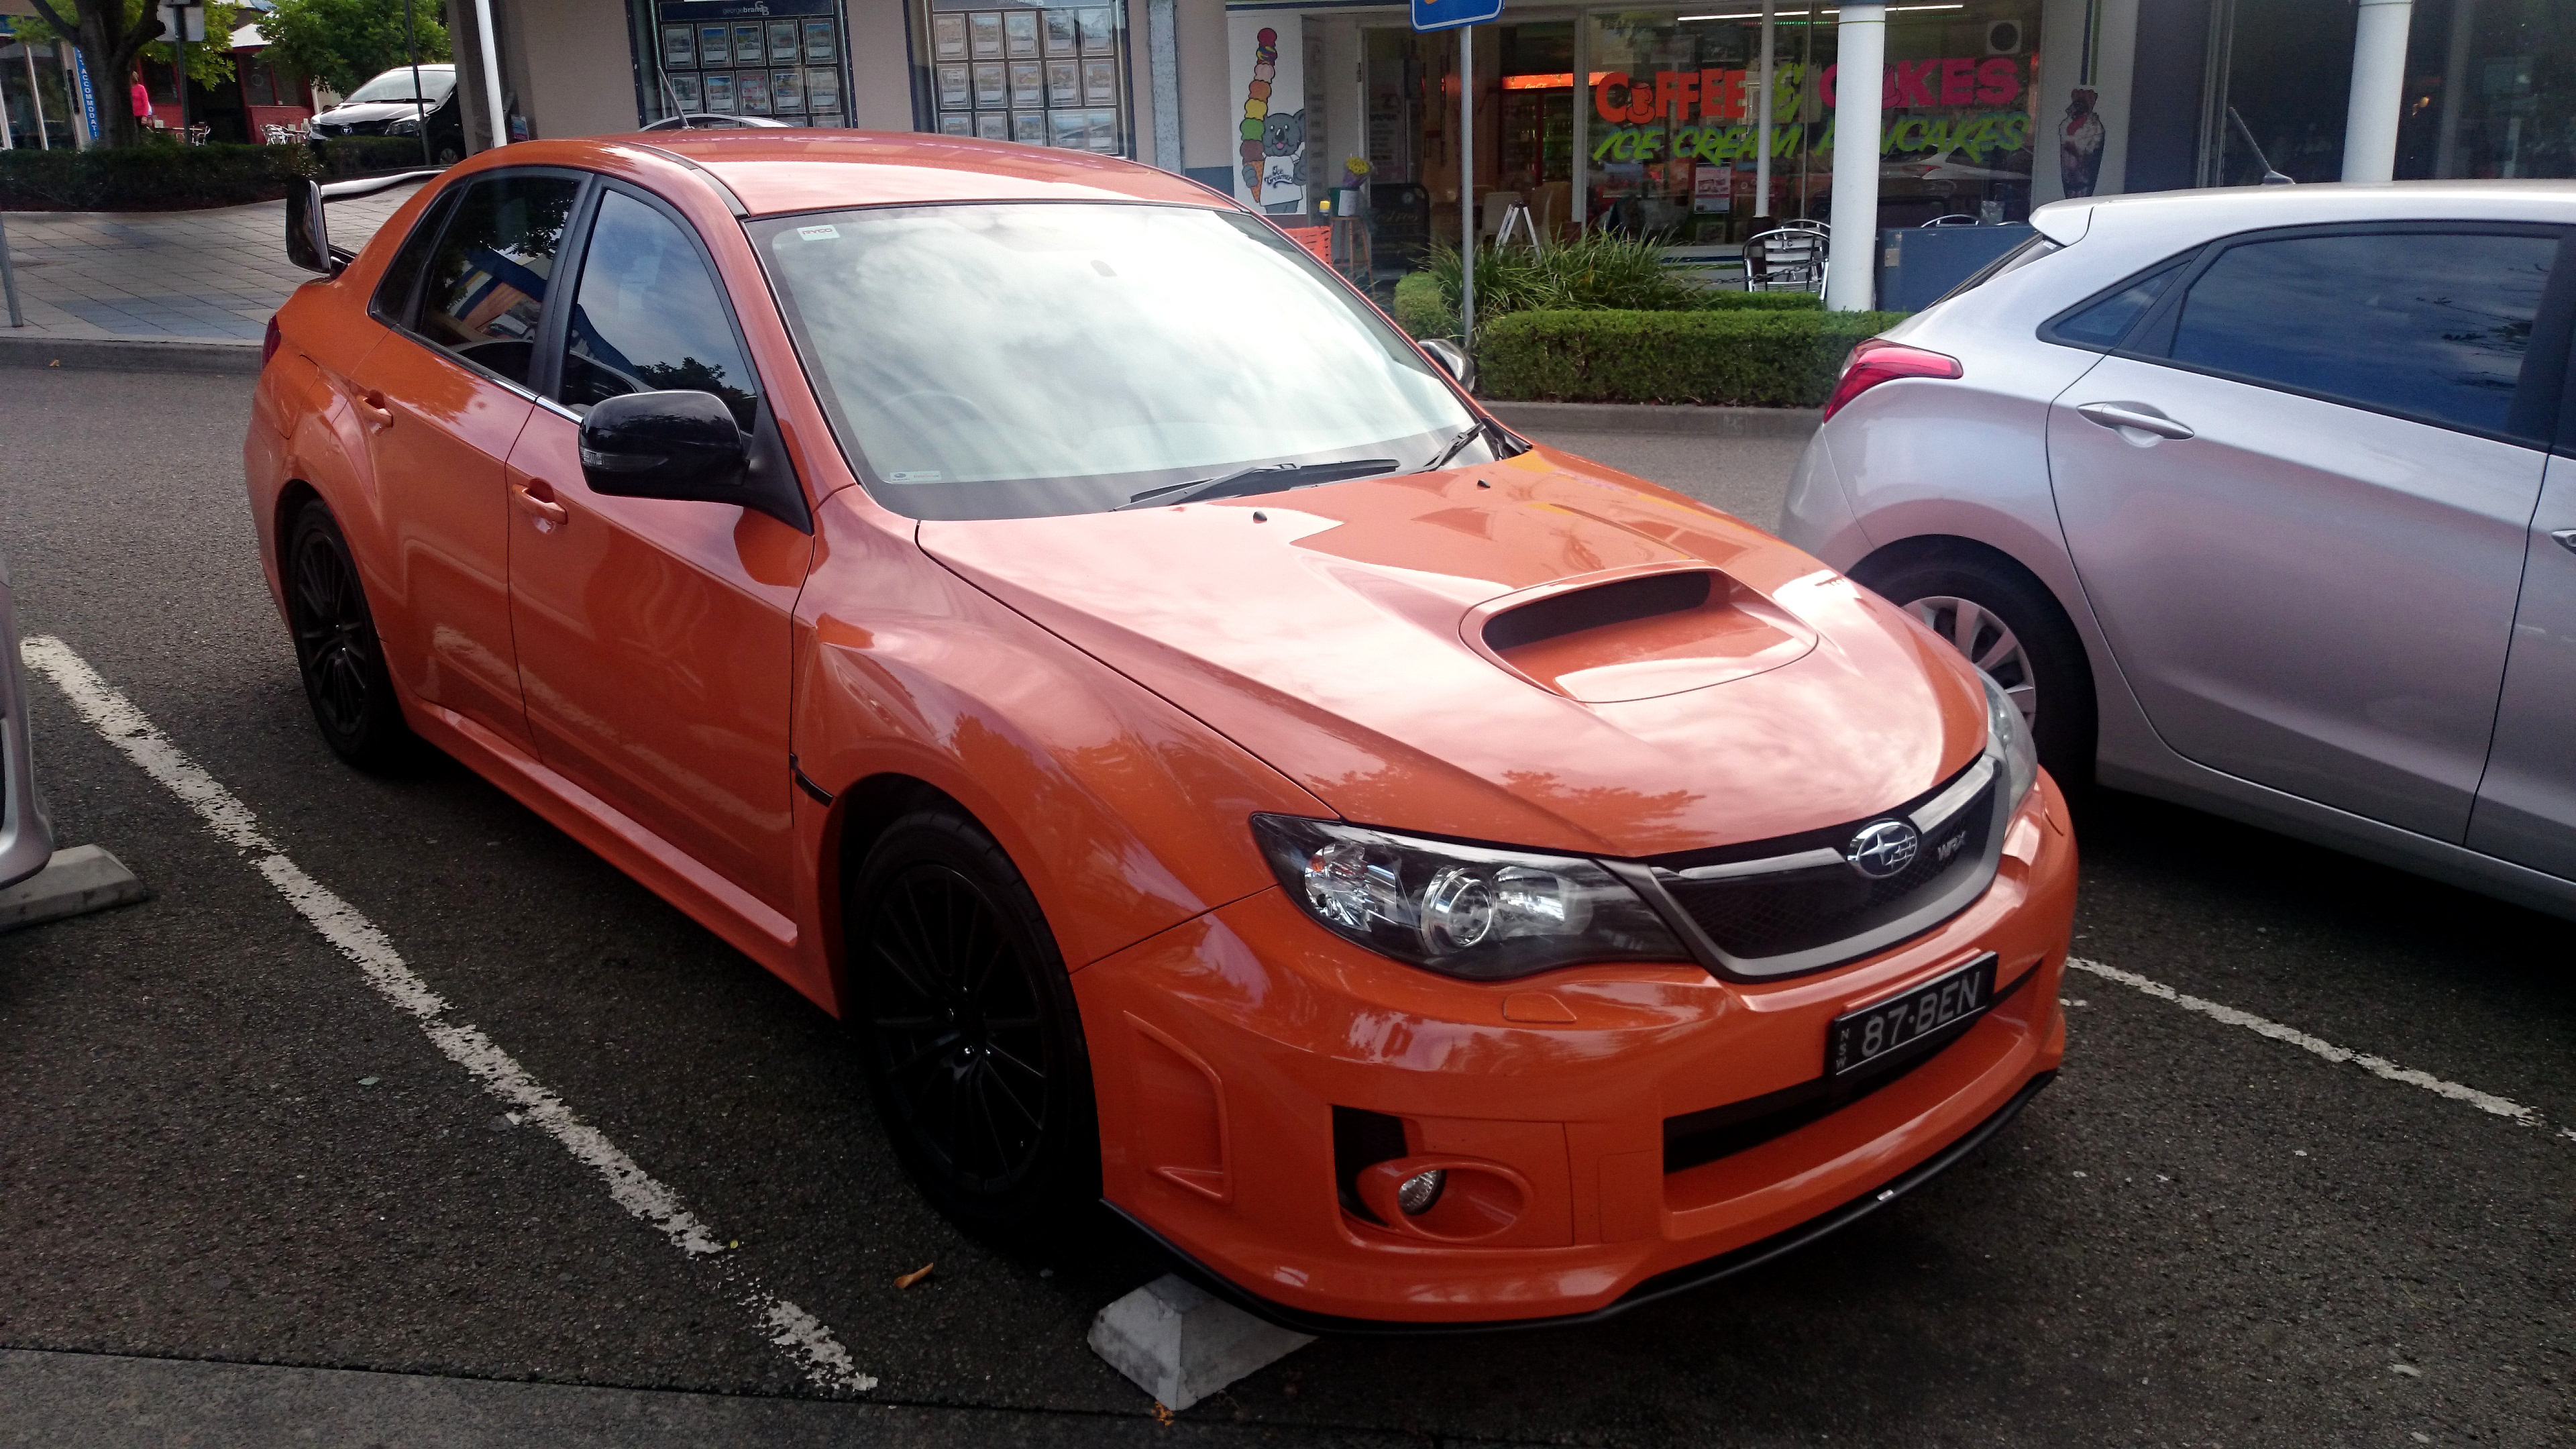 File2012 Subaru Impreza GVE MY12 WRX Club Spec sedan